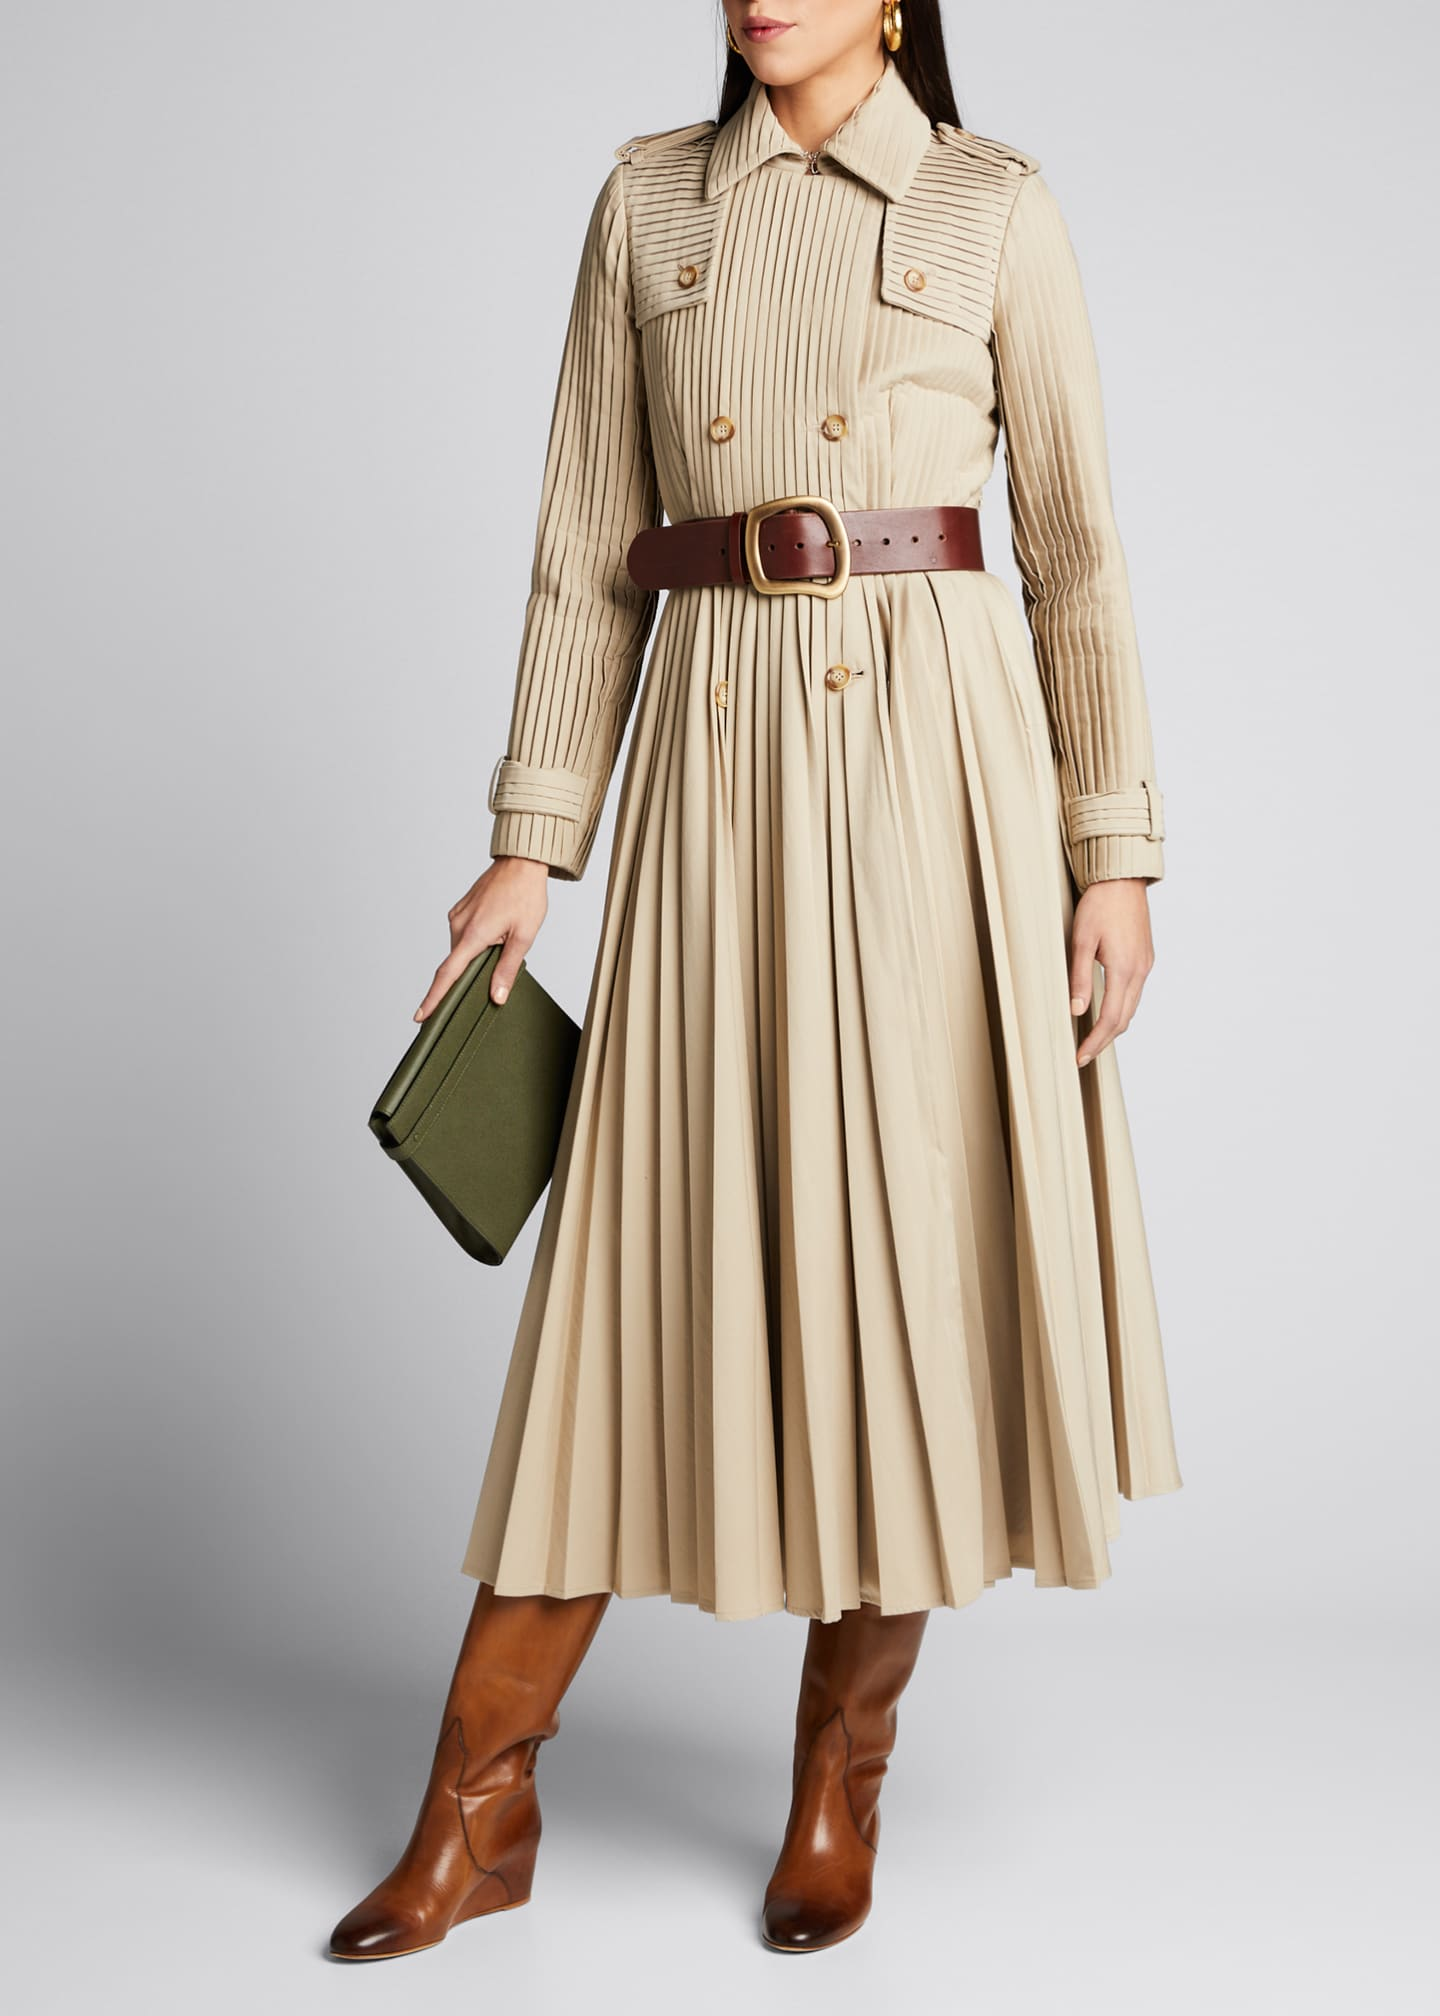 Gabriela Hearst Stein Pleated Trench Coat